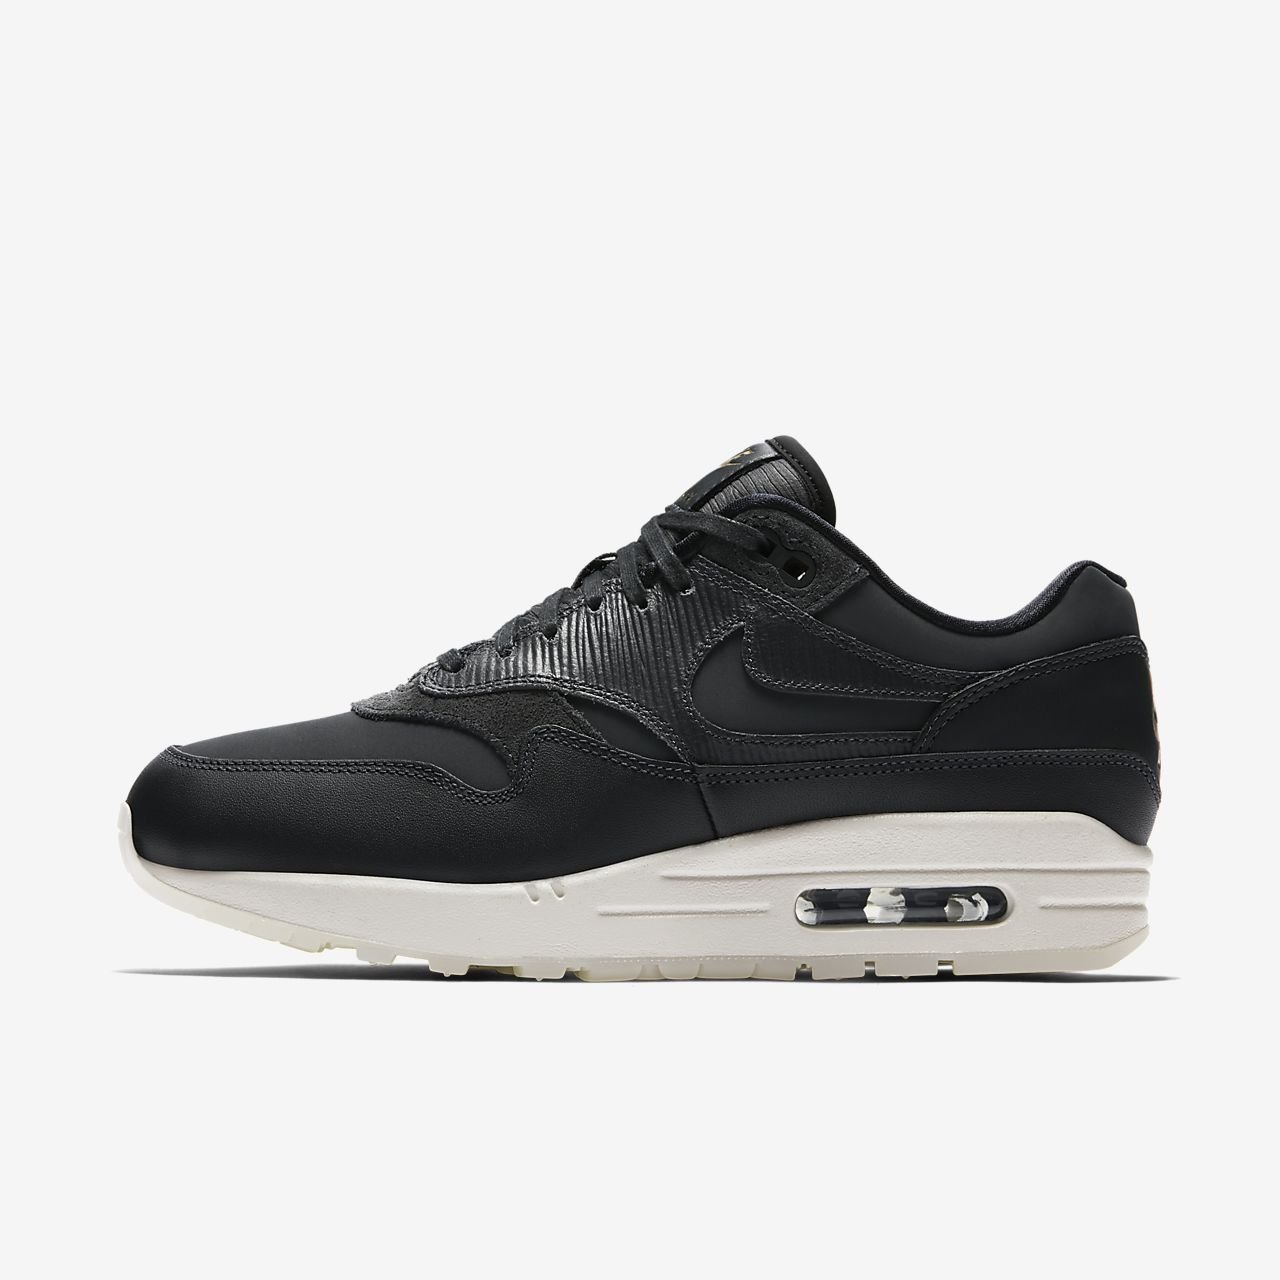 nike air max 90 ultra premium women's